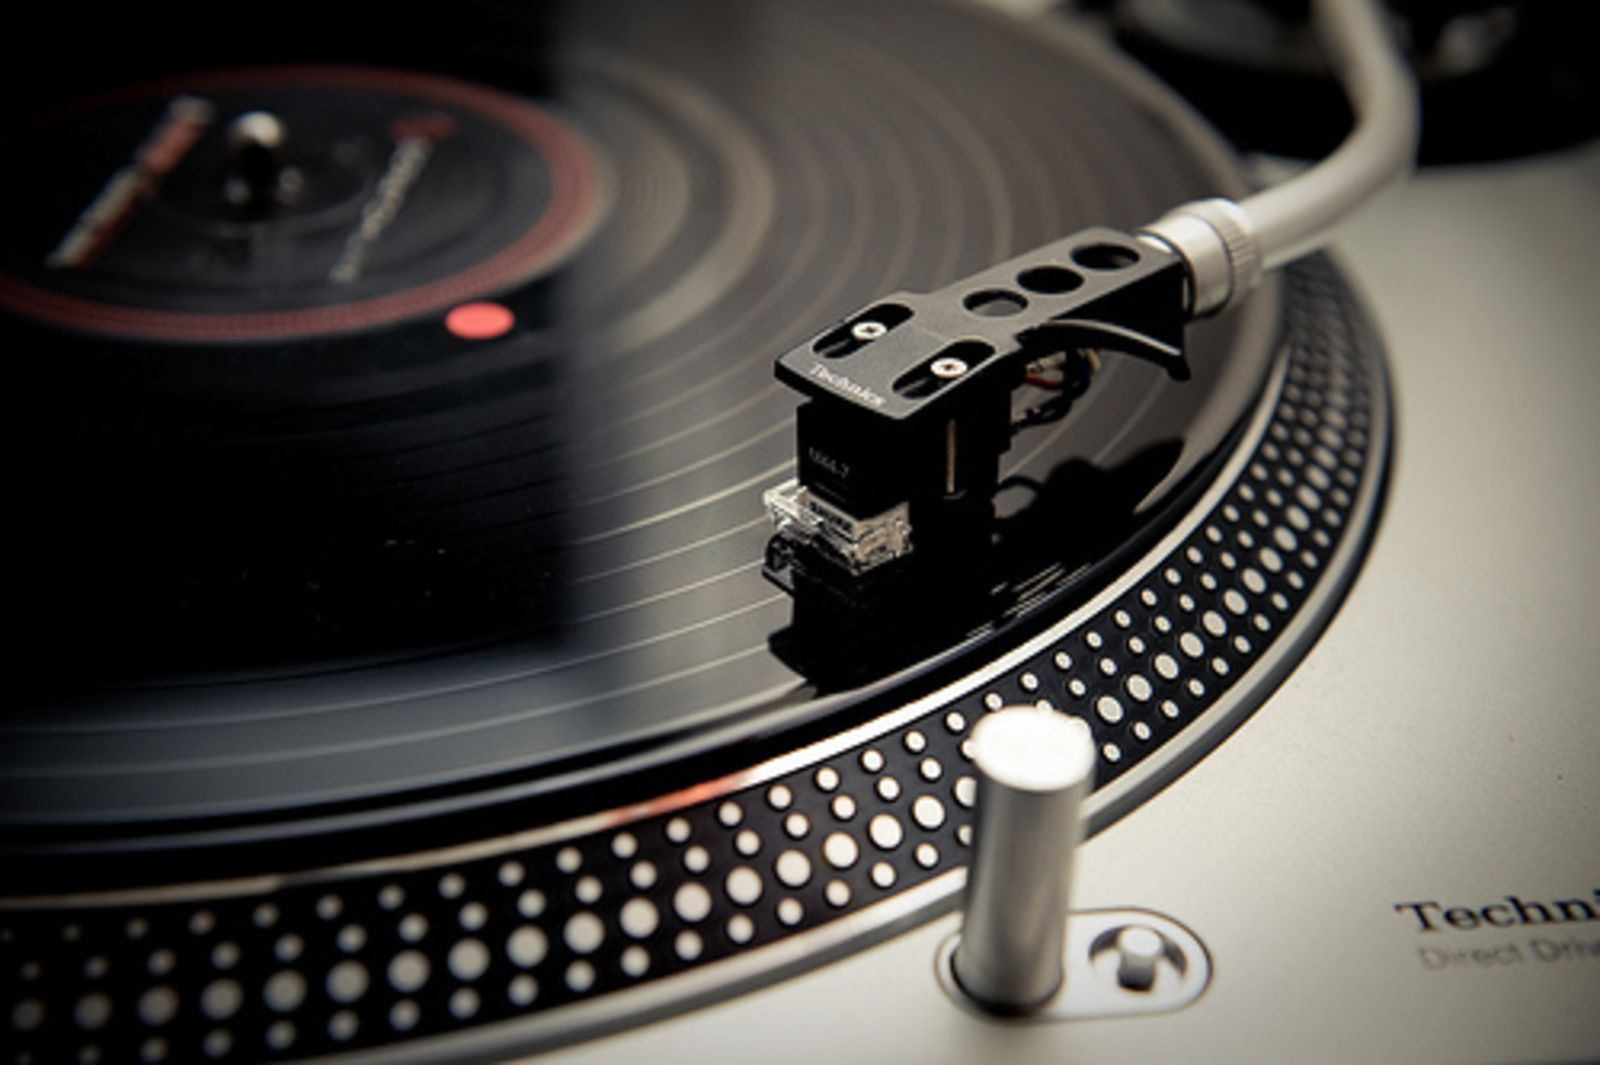 Free Download Technics Sl 1200 Mk2 Image 32943 Audiofanzine